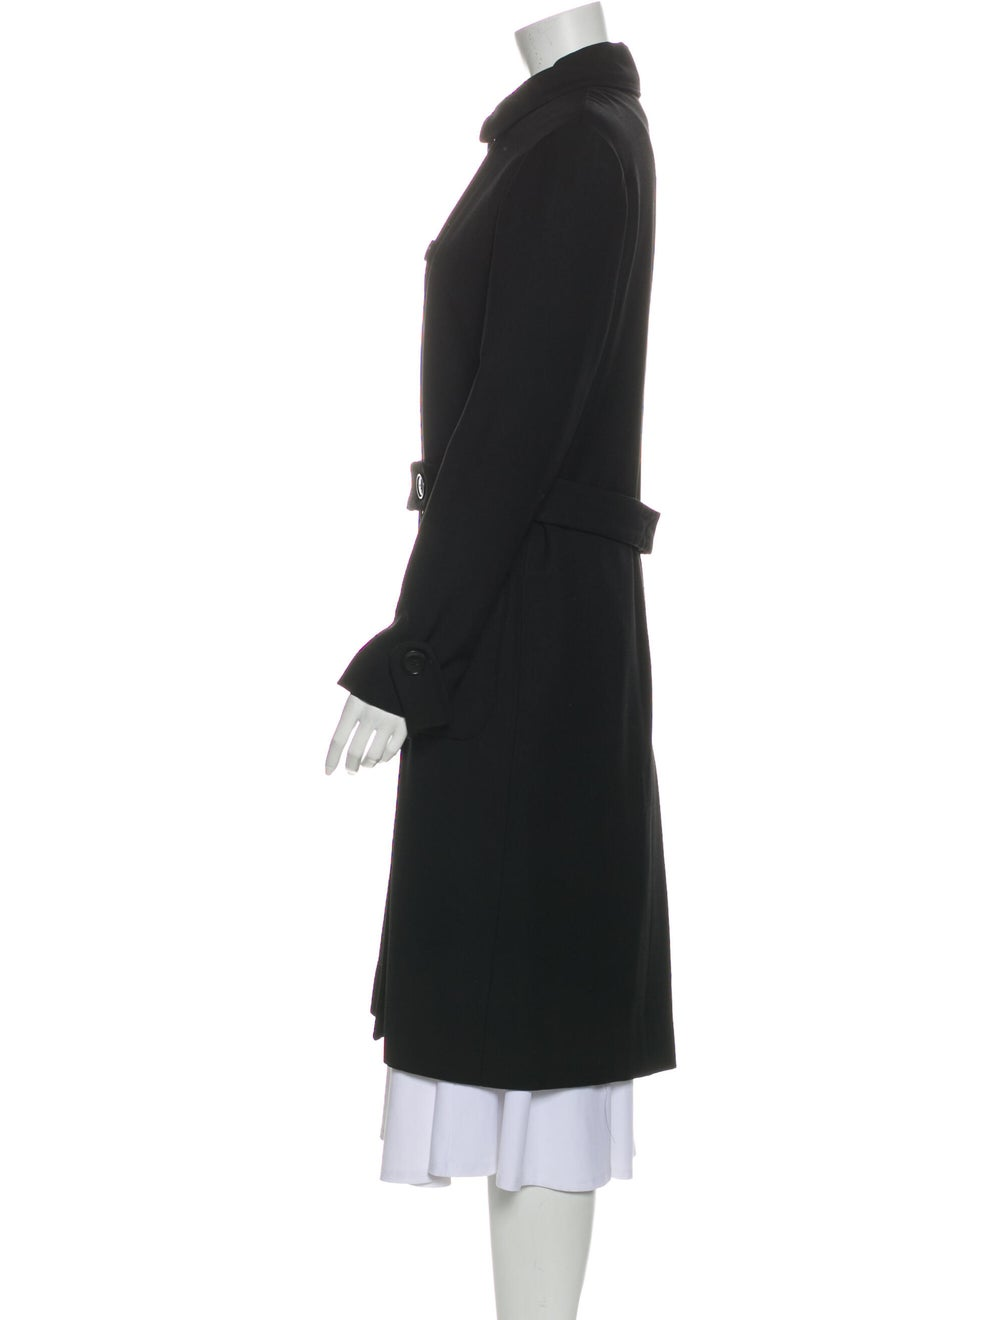 Cacharel Trench Coat Black - image 2